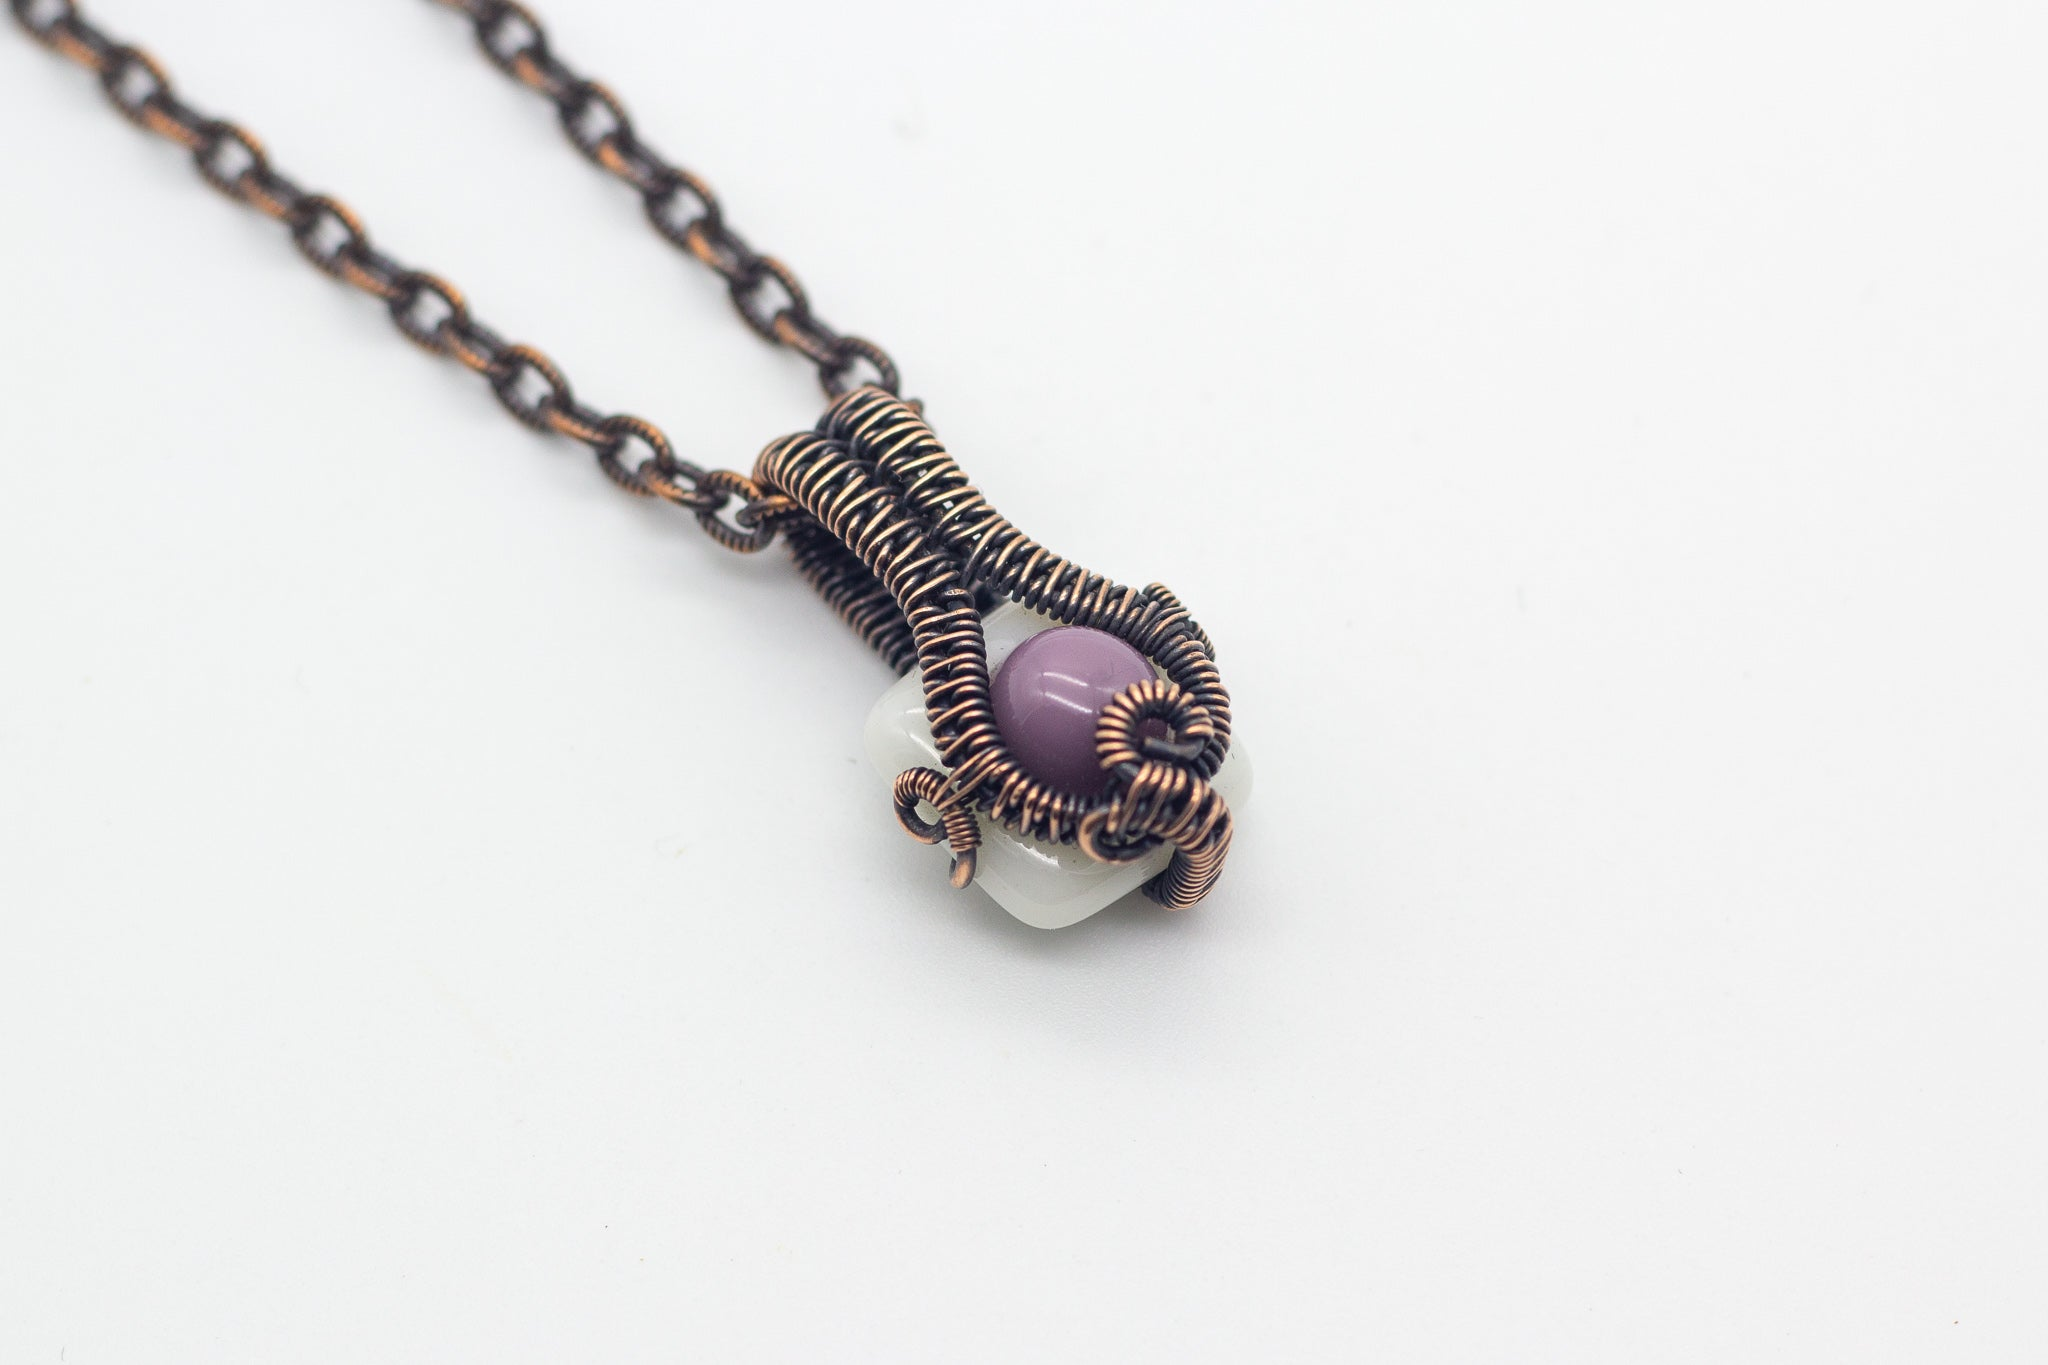 Small handmade pendant with purple and white fused glass and copper wire wrapping